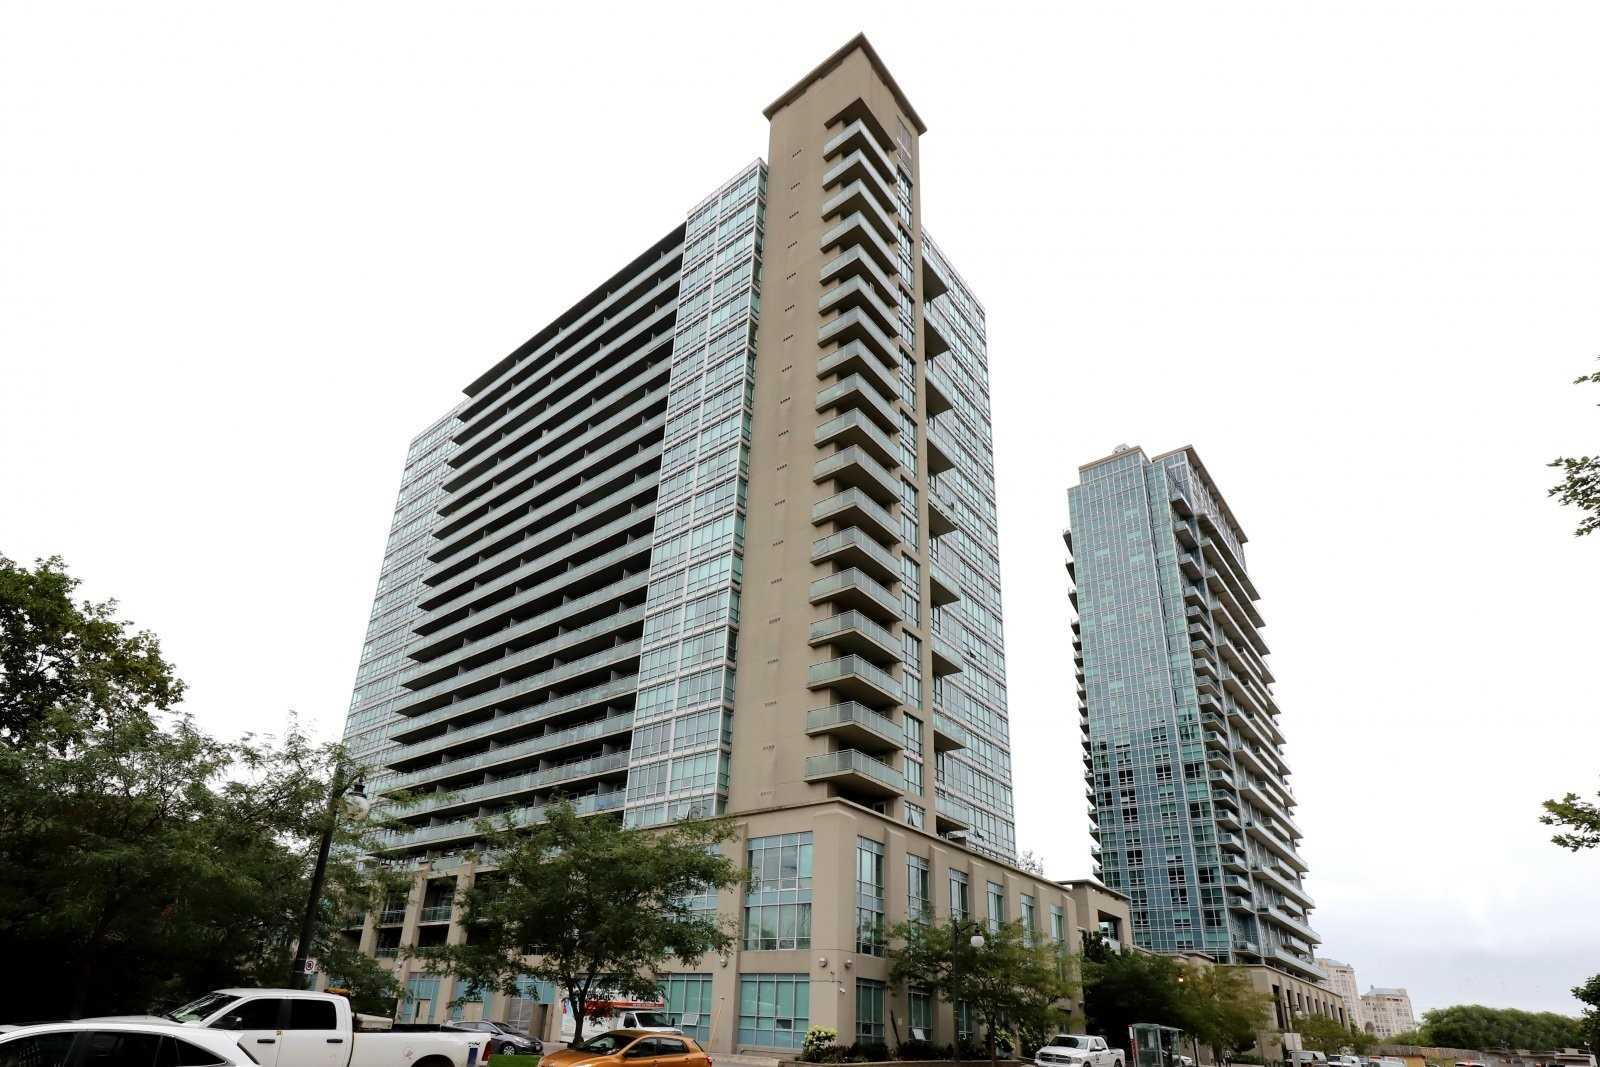 185 Legion Rd, Toronto, Ontario M8Y0A1, 1 Bedroom Bedrooms, 4 Rooms Rooms,1 BathroomBathrooms,Condo Apt,For Sale,Legion,W4904502